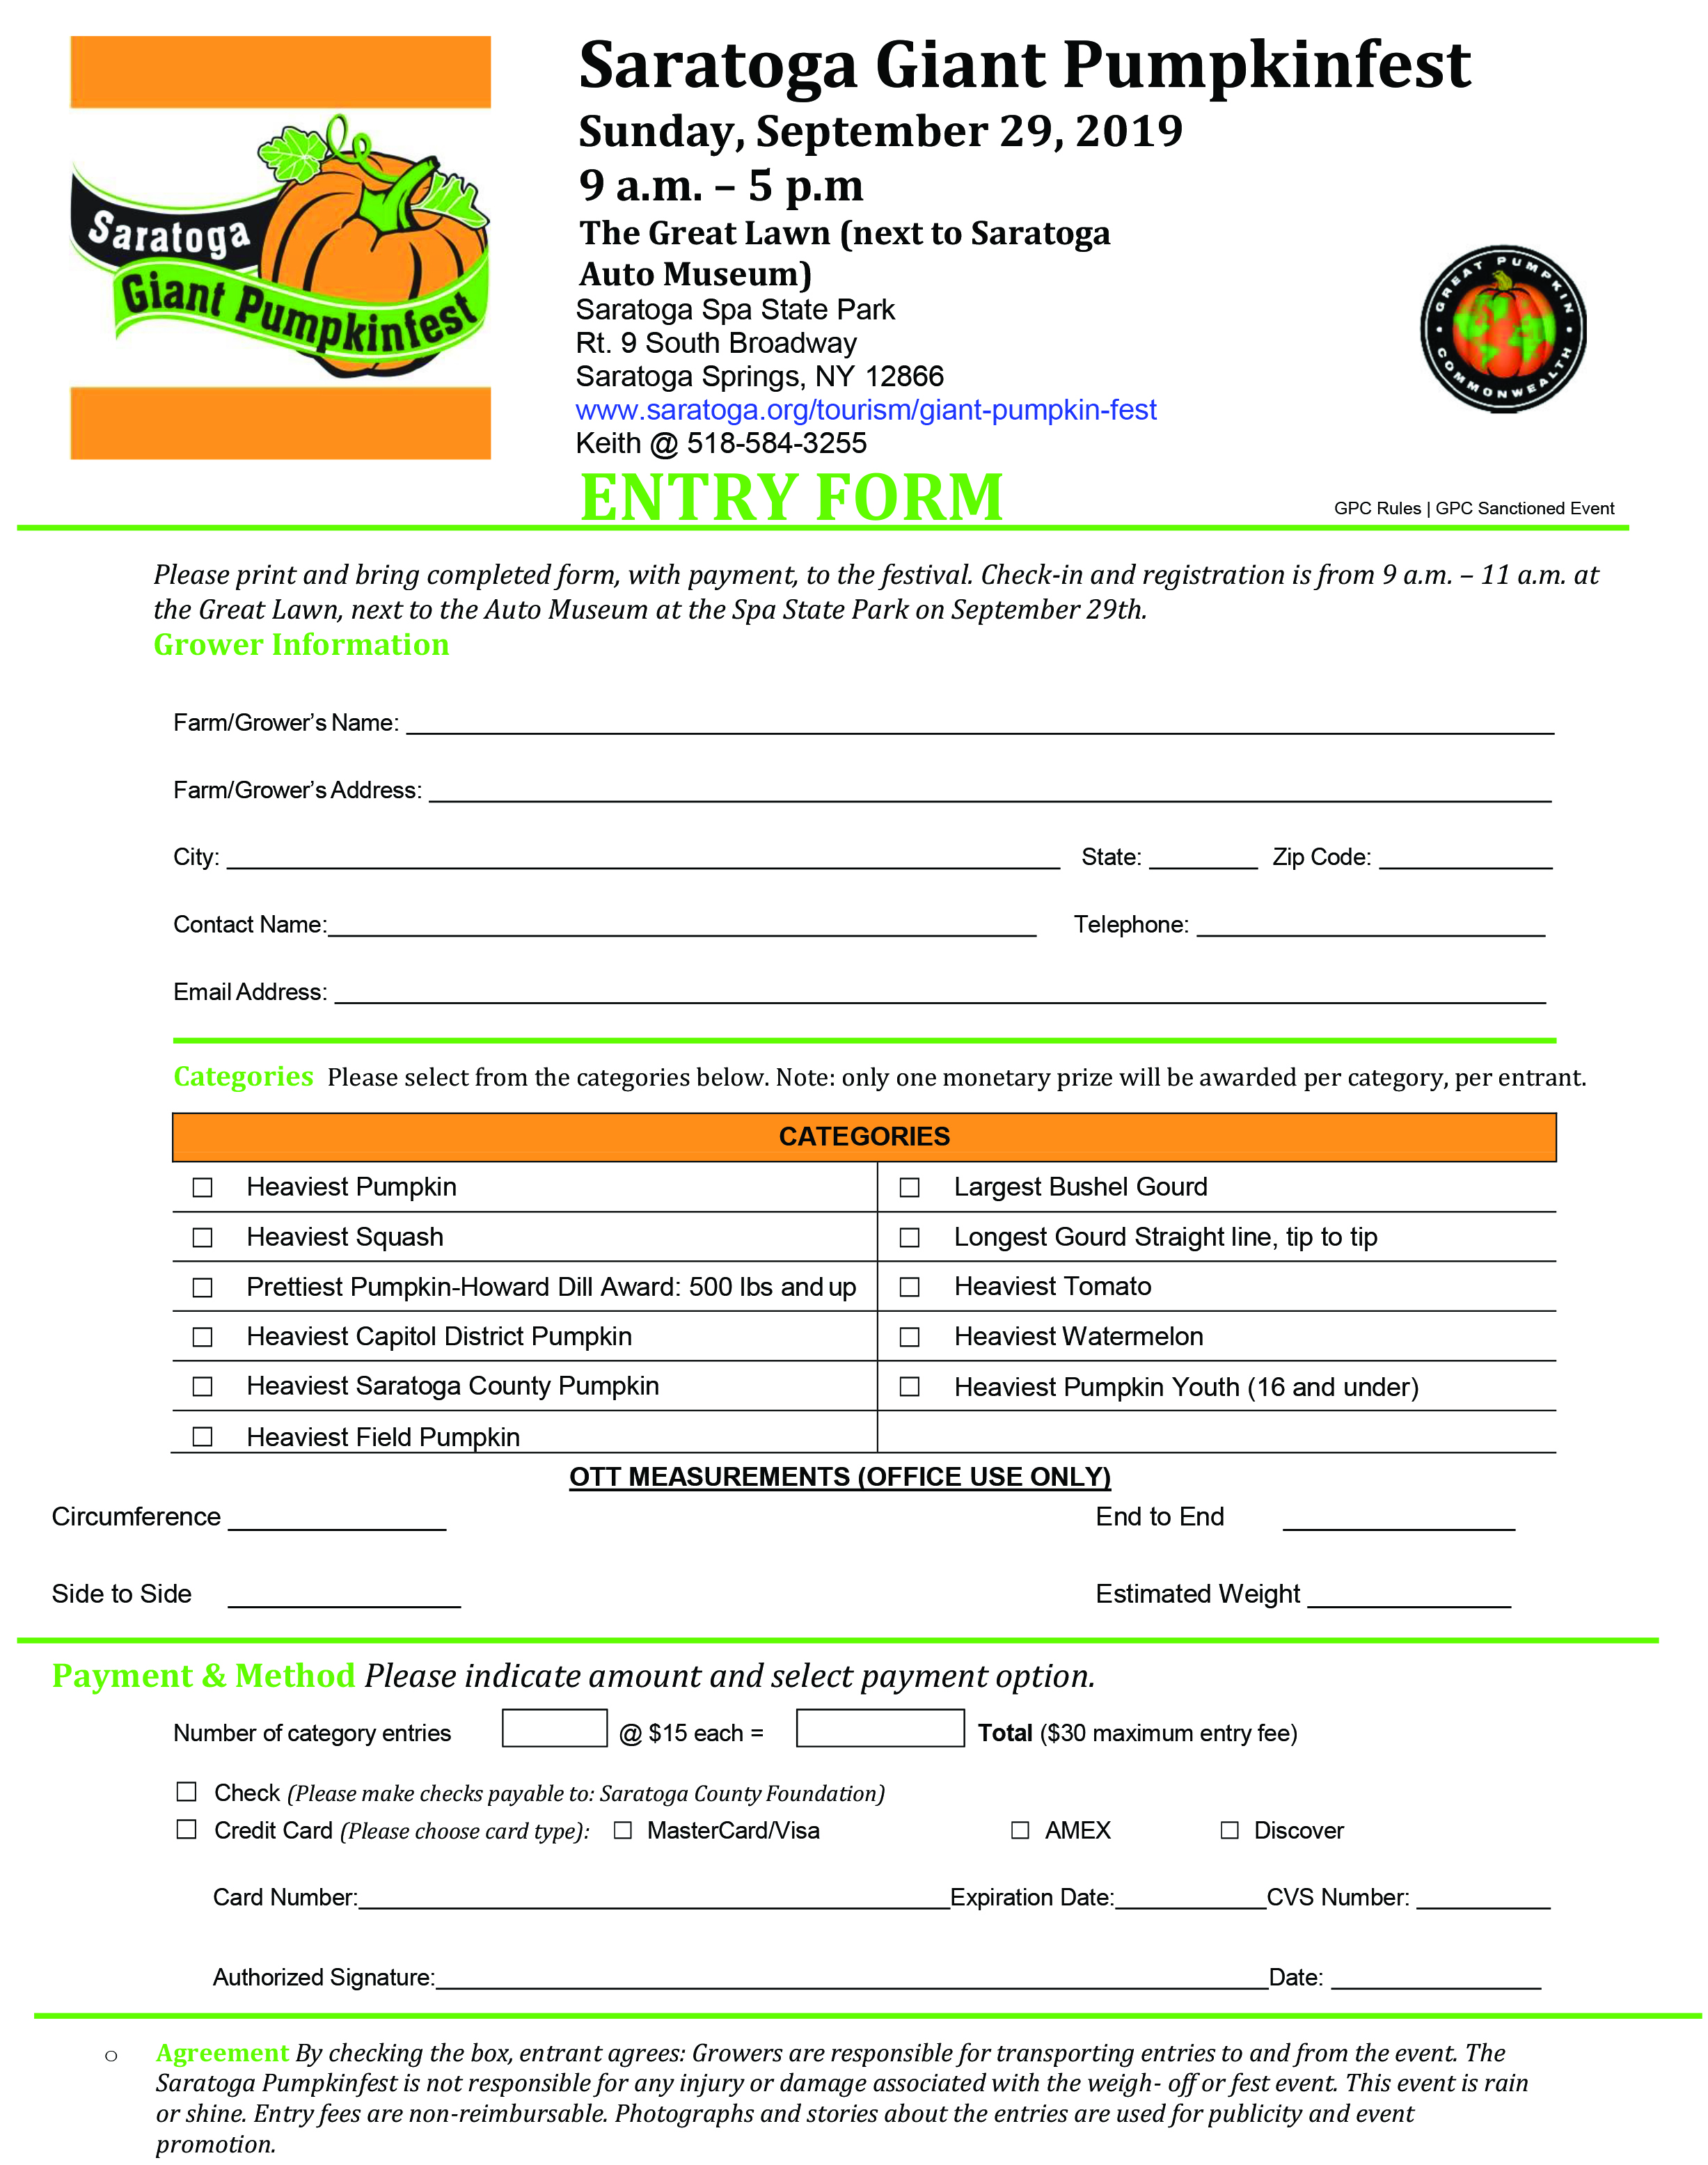 Microsoft Word - Saratoga Giant Pumpkin Fest_Entry Form_2017.doc